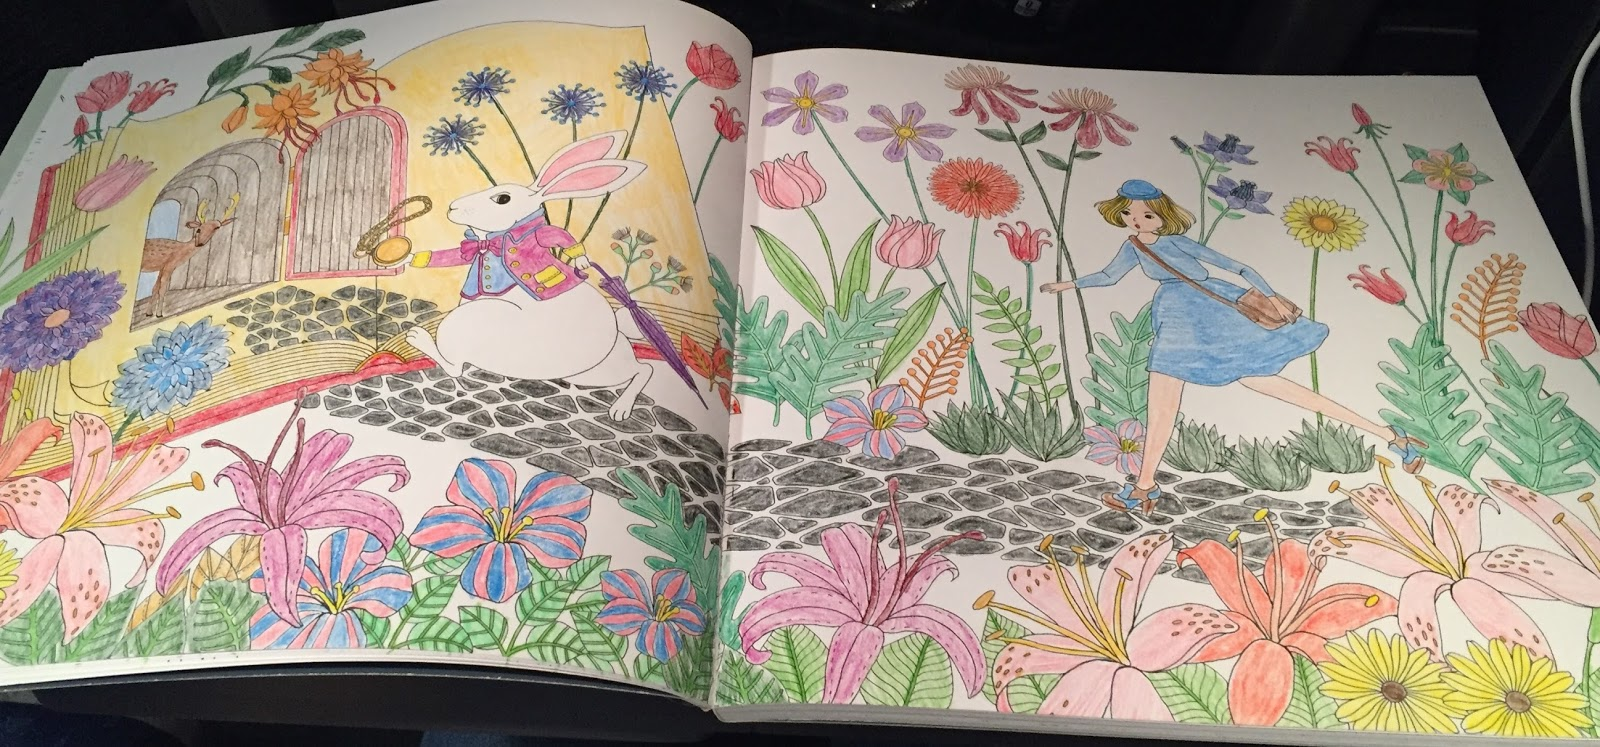 The botany coloring book by paul young - Other Features Of Note Are A To From Dedication Page And The Removable Dust Jacket That You Can Color The Inside Of For An Extra Long Coloring Experience